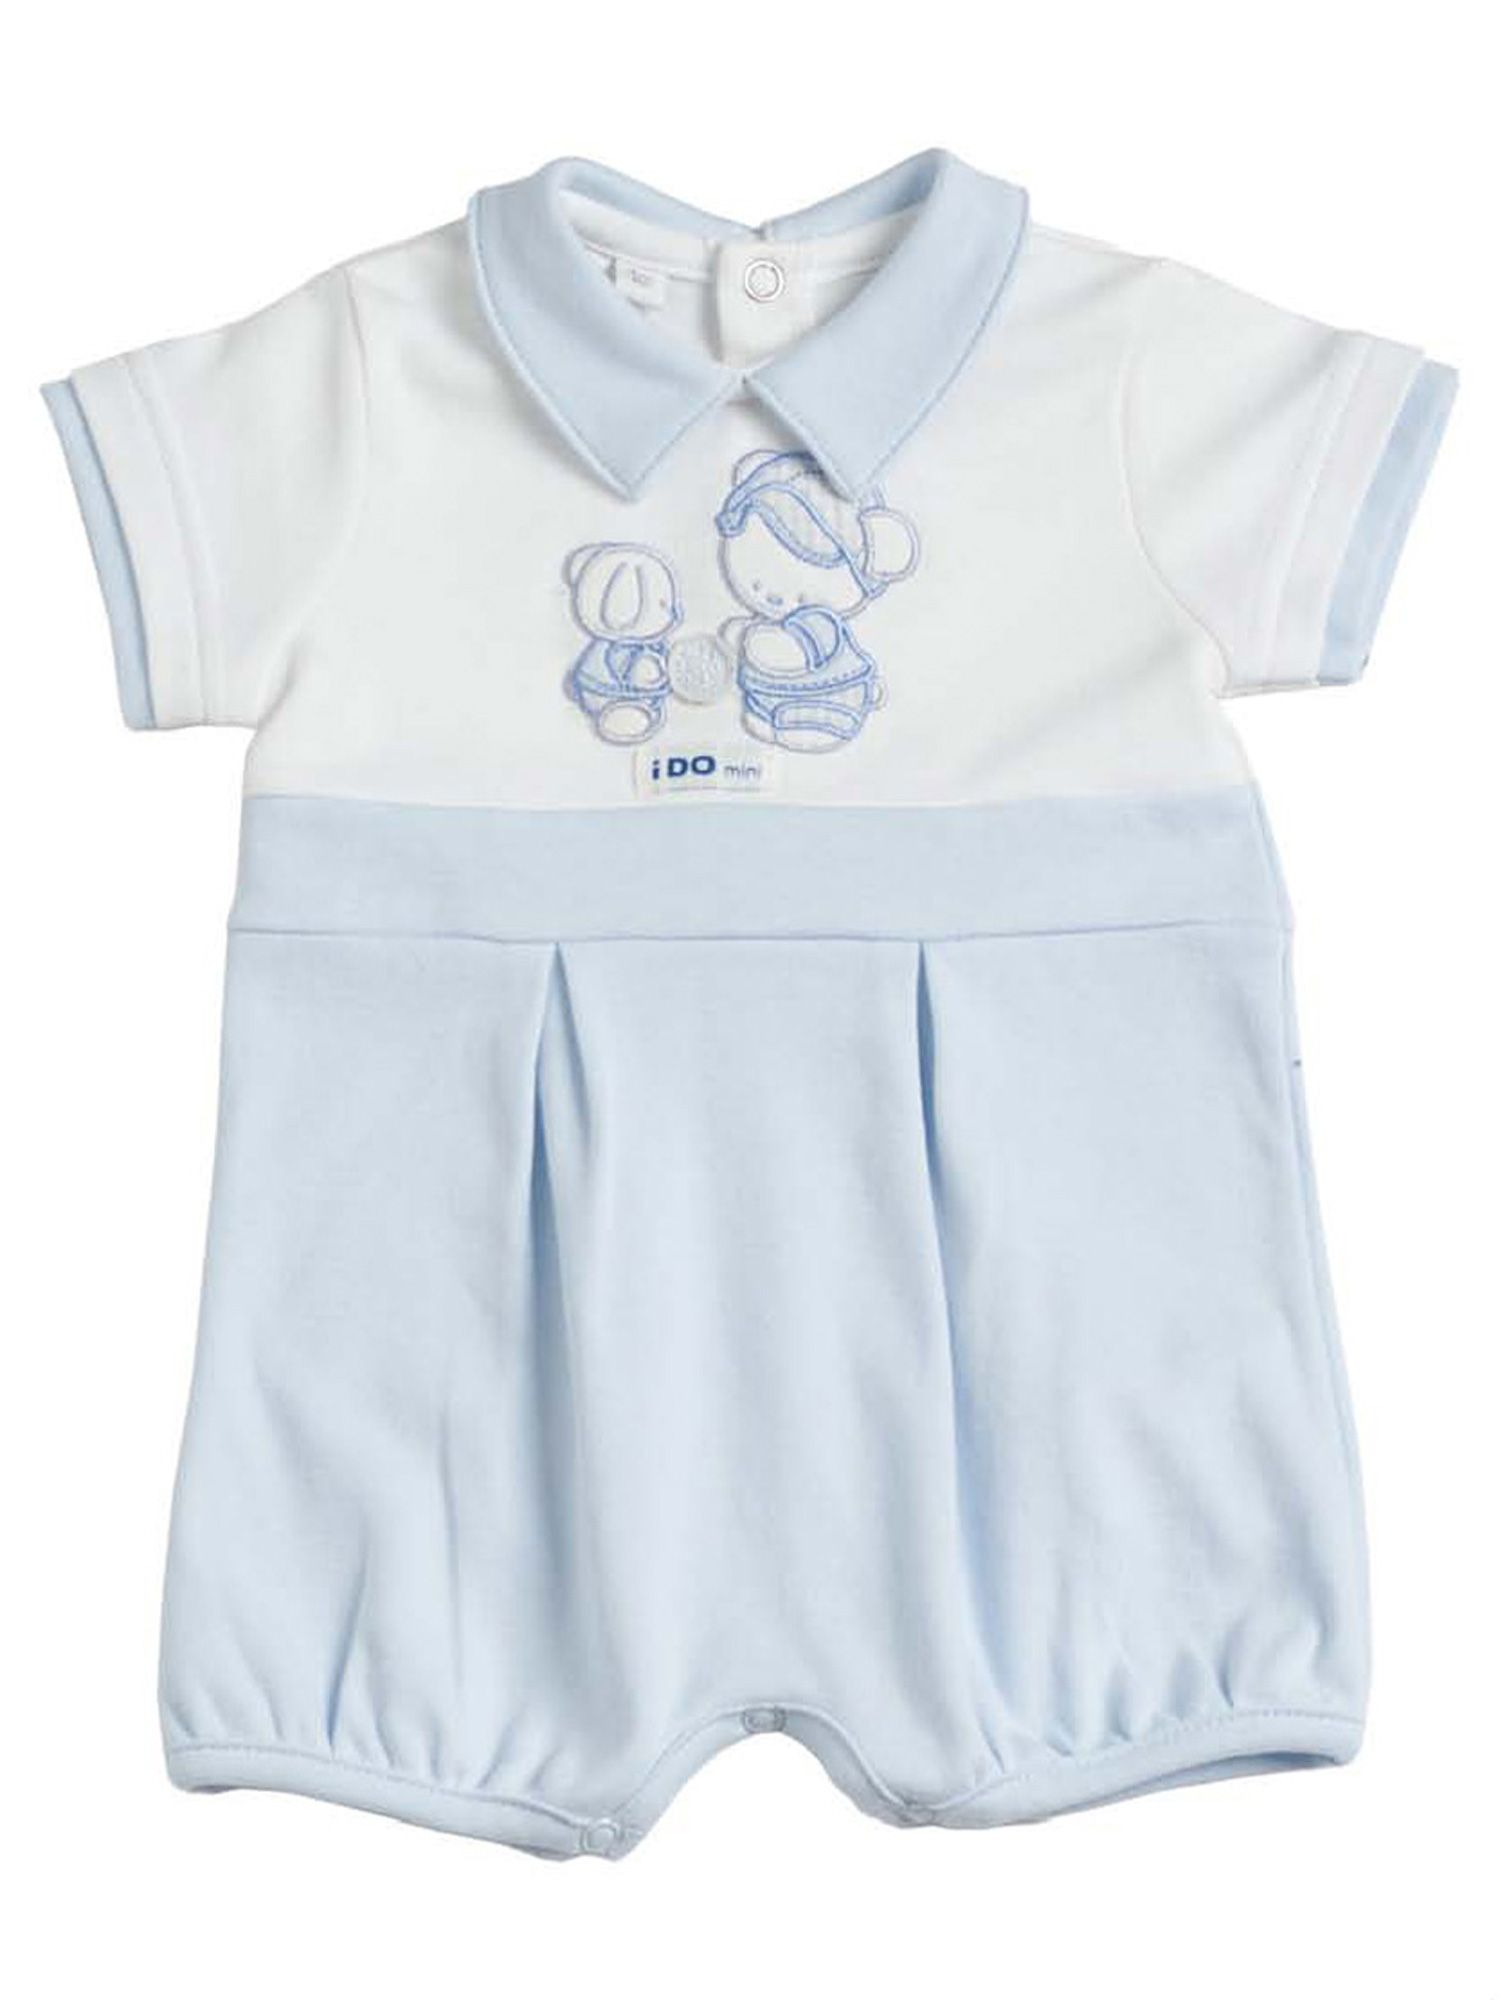 Baby boys pale blue cotton shorts all in one